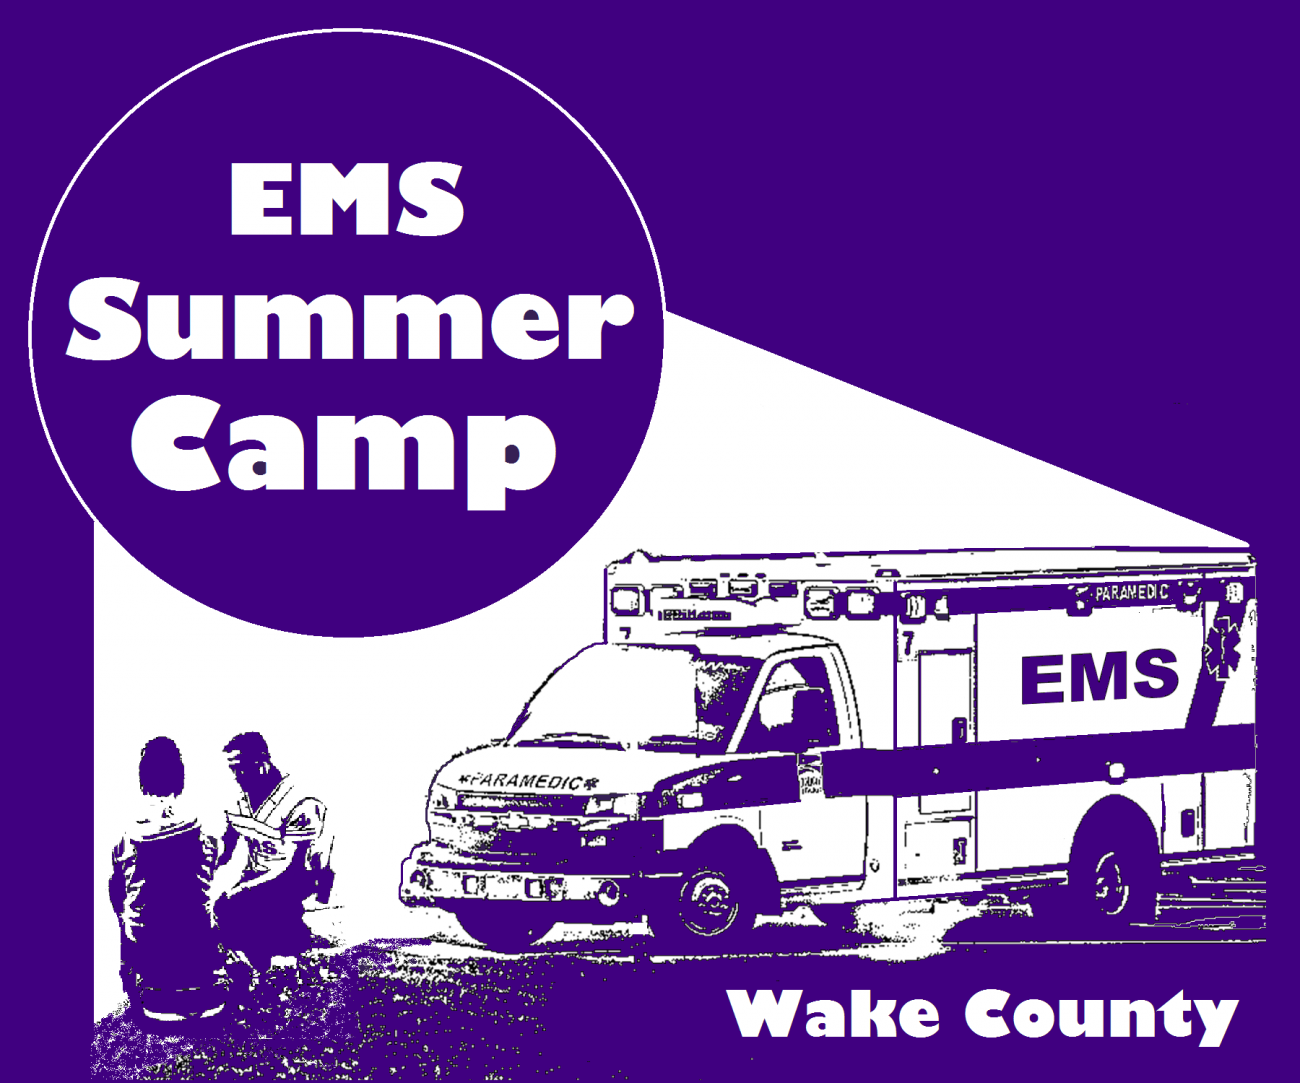 EMS Summer Camp logo